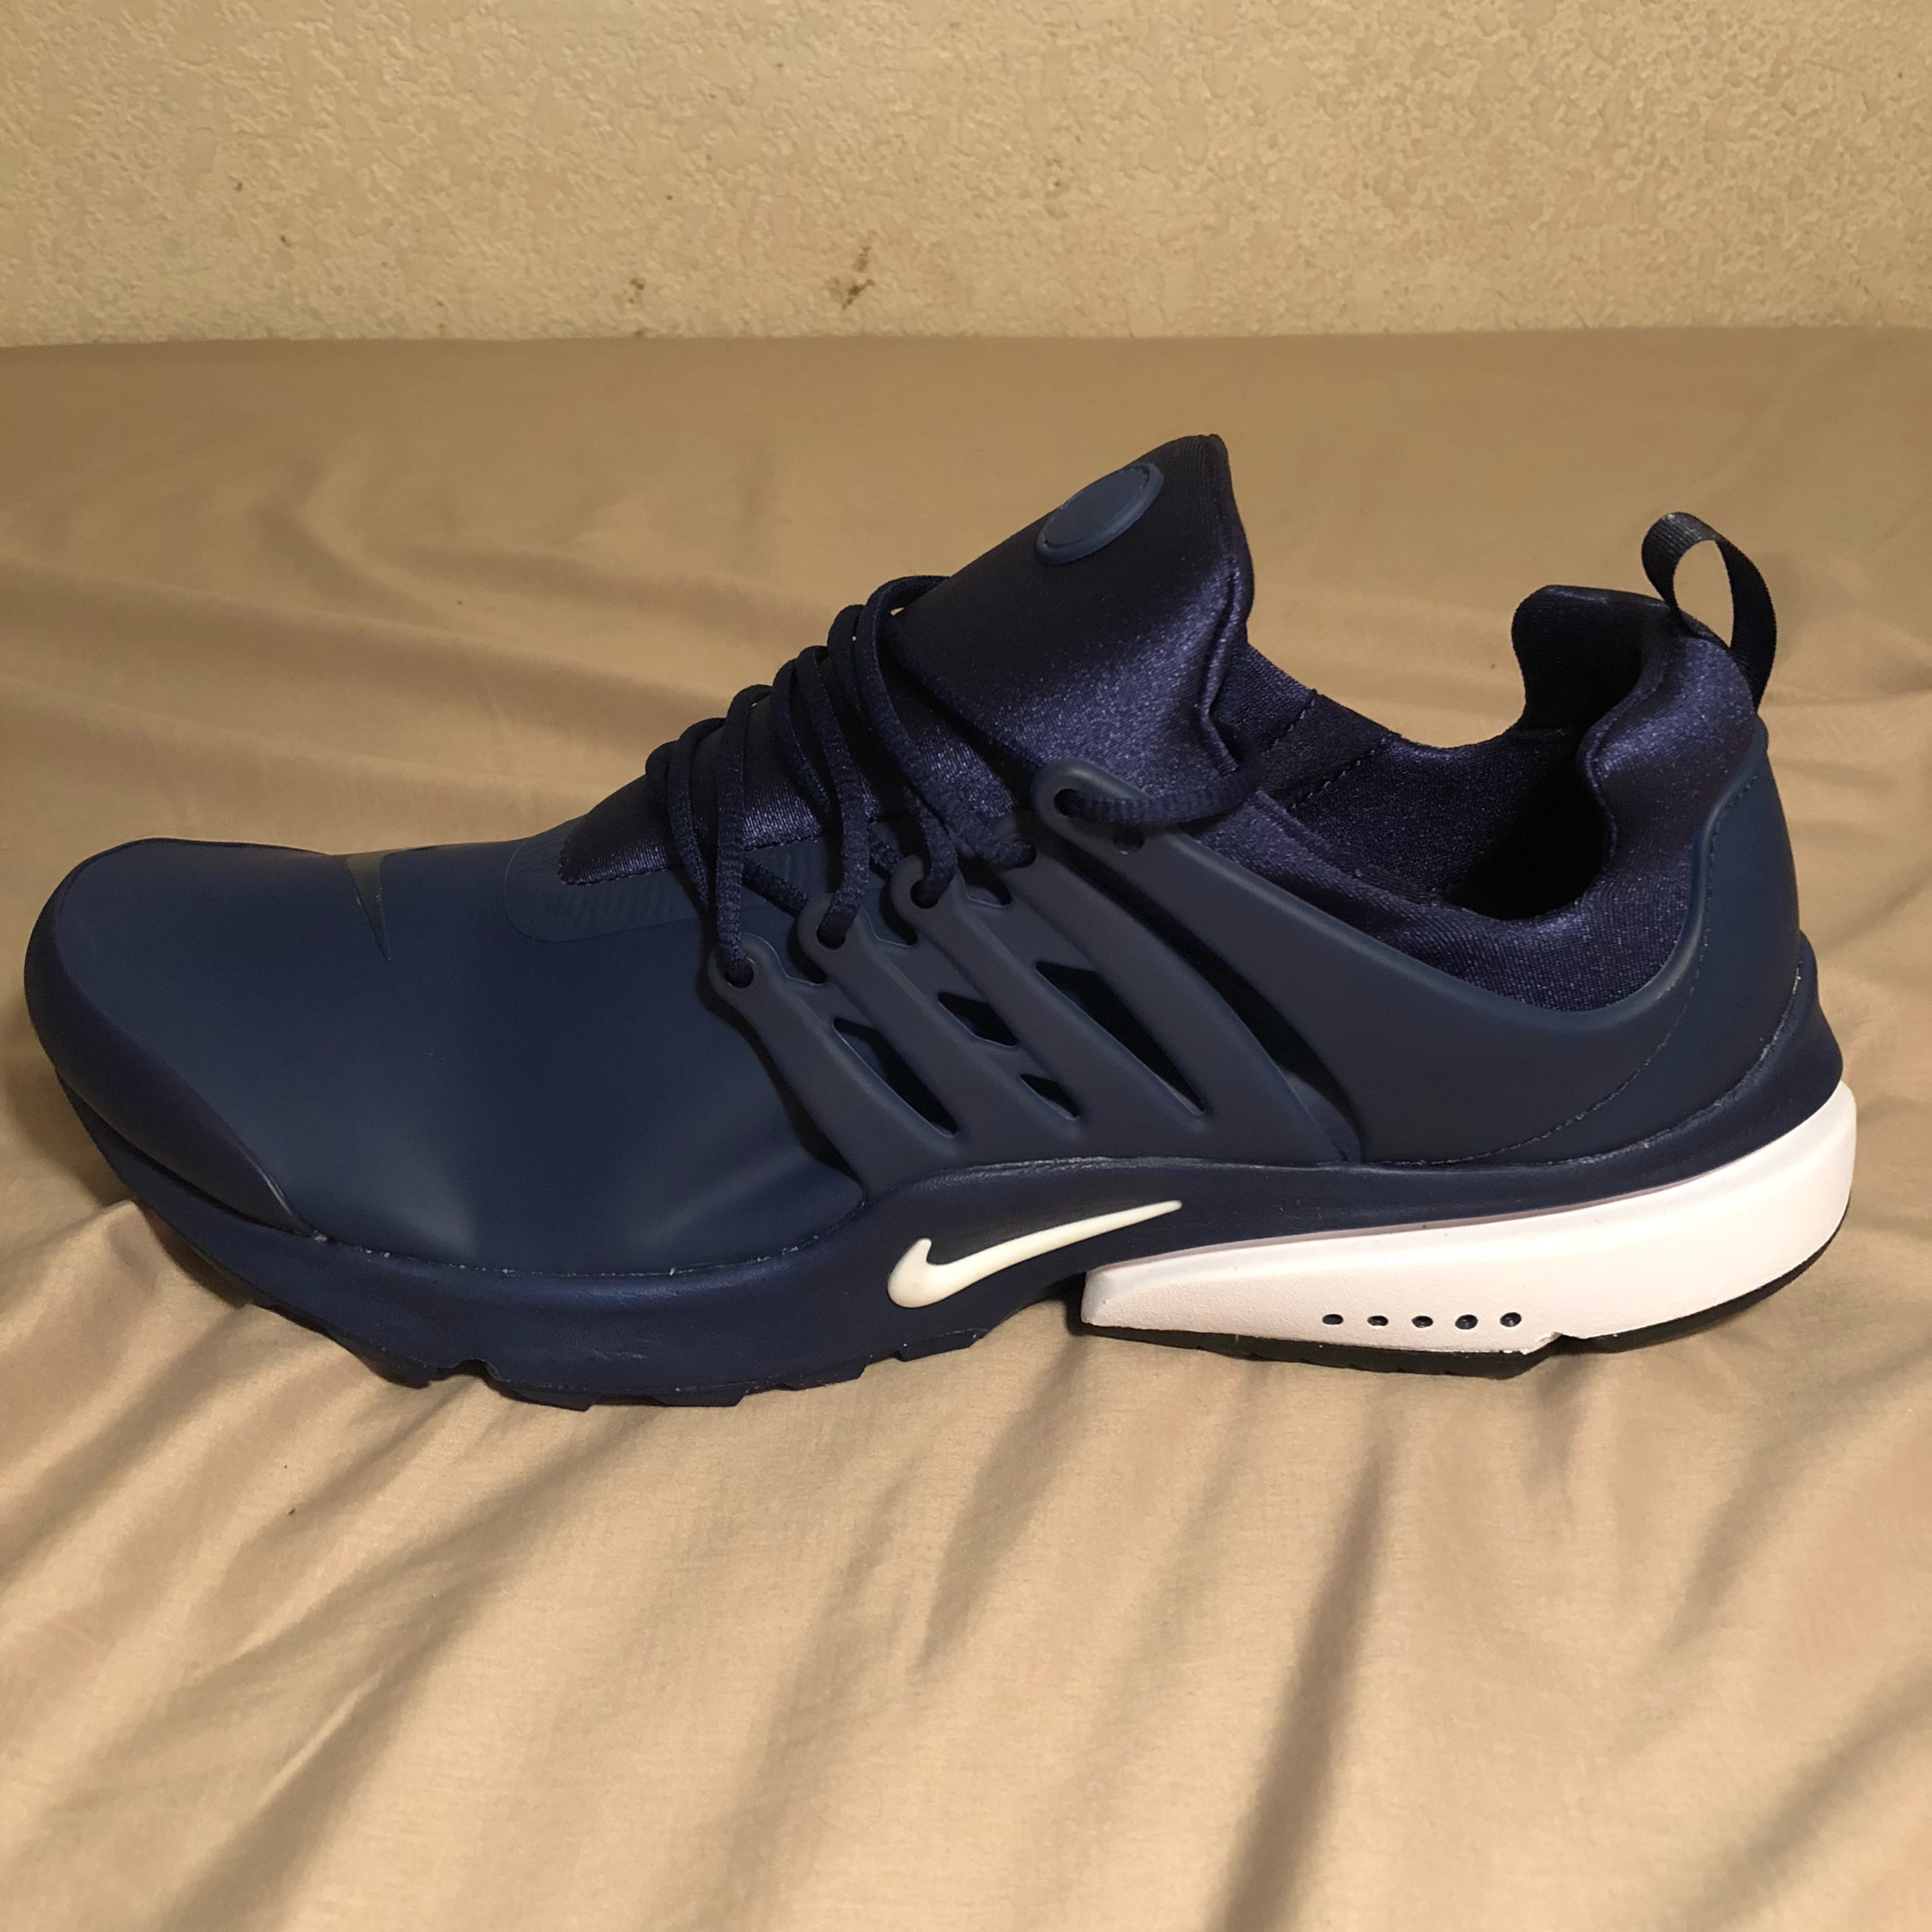 competitive price 05d3c b9504 Nike Air Presto Low Utility Binary Blue